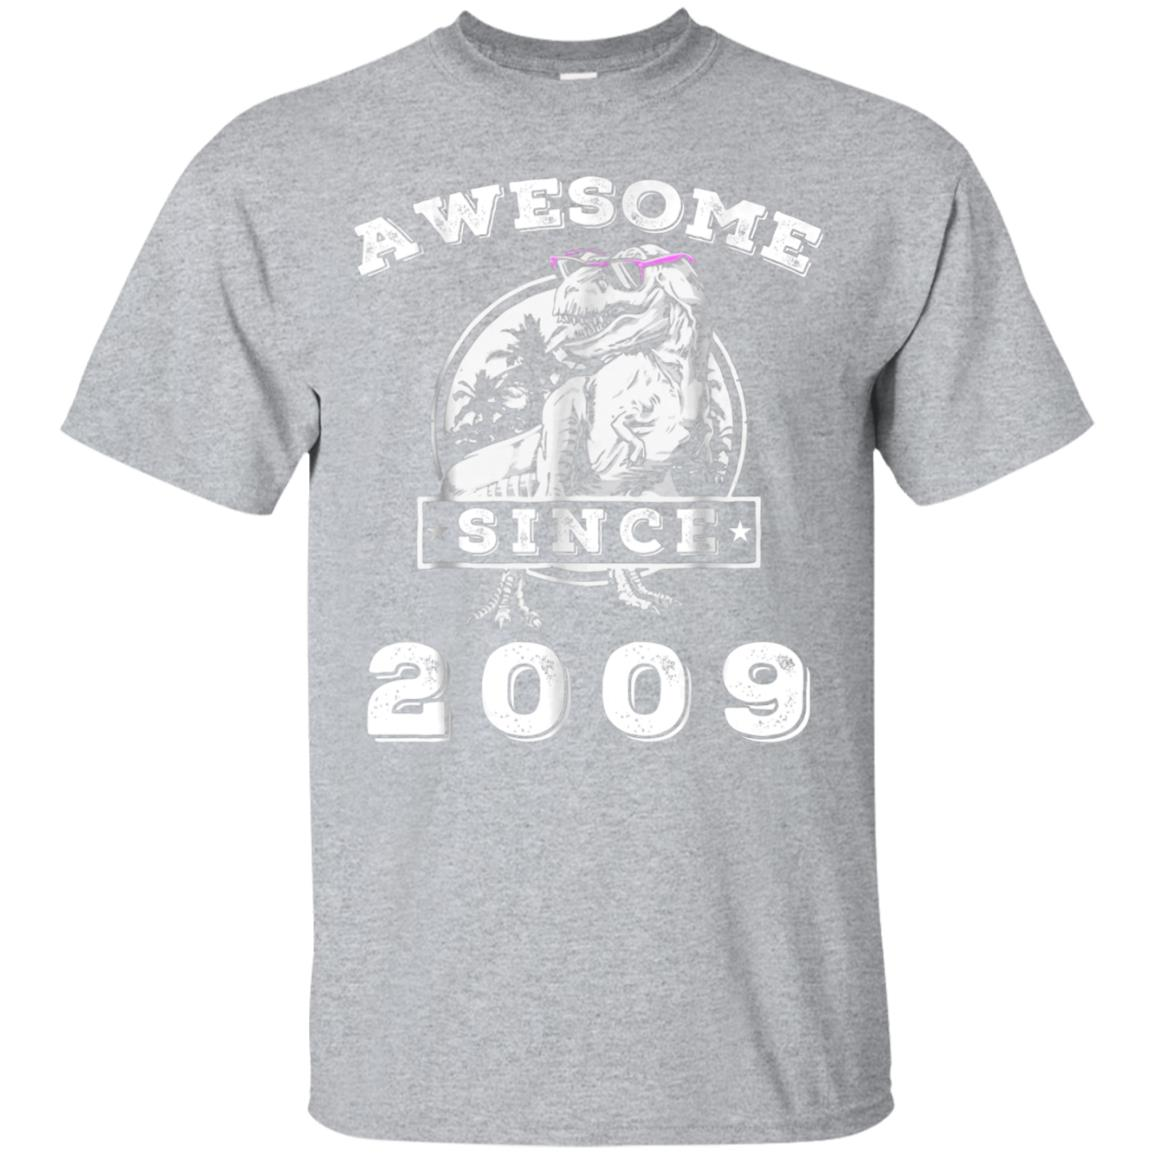 Awesome Since 2009 T-Shirt Funny 9th Birthday Gift Shirt 99promocode